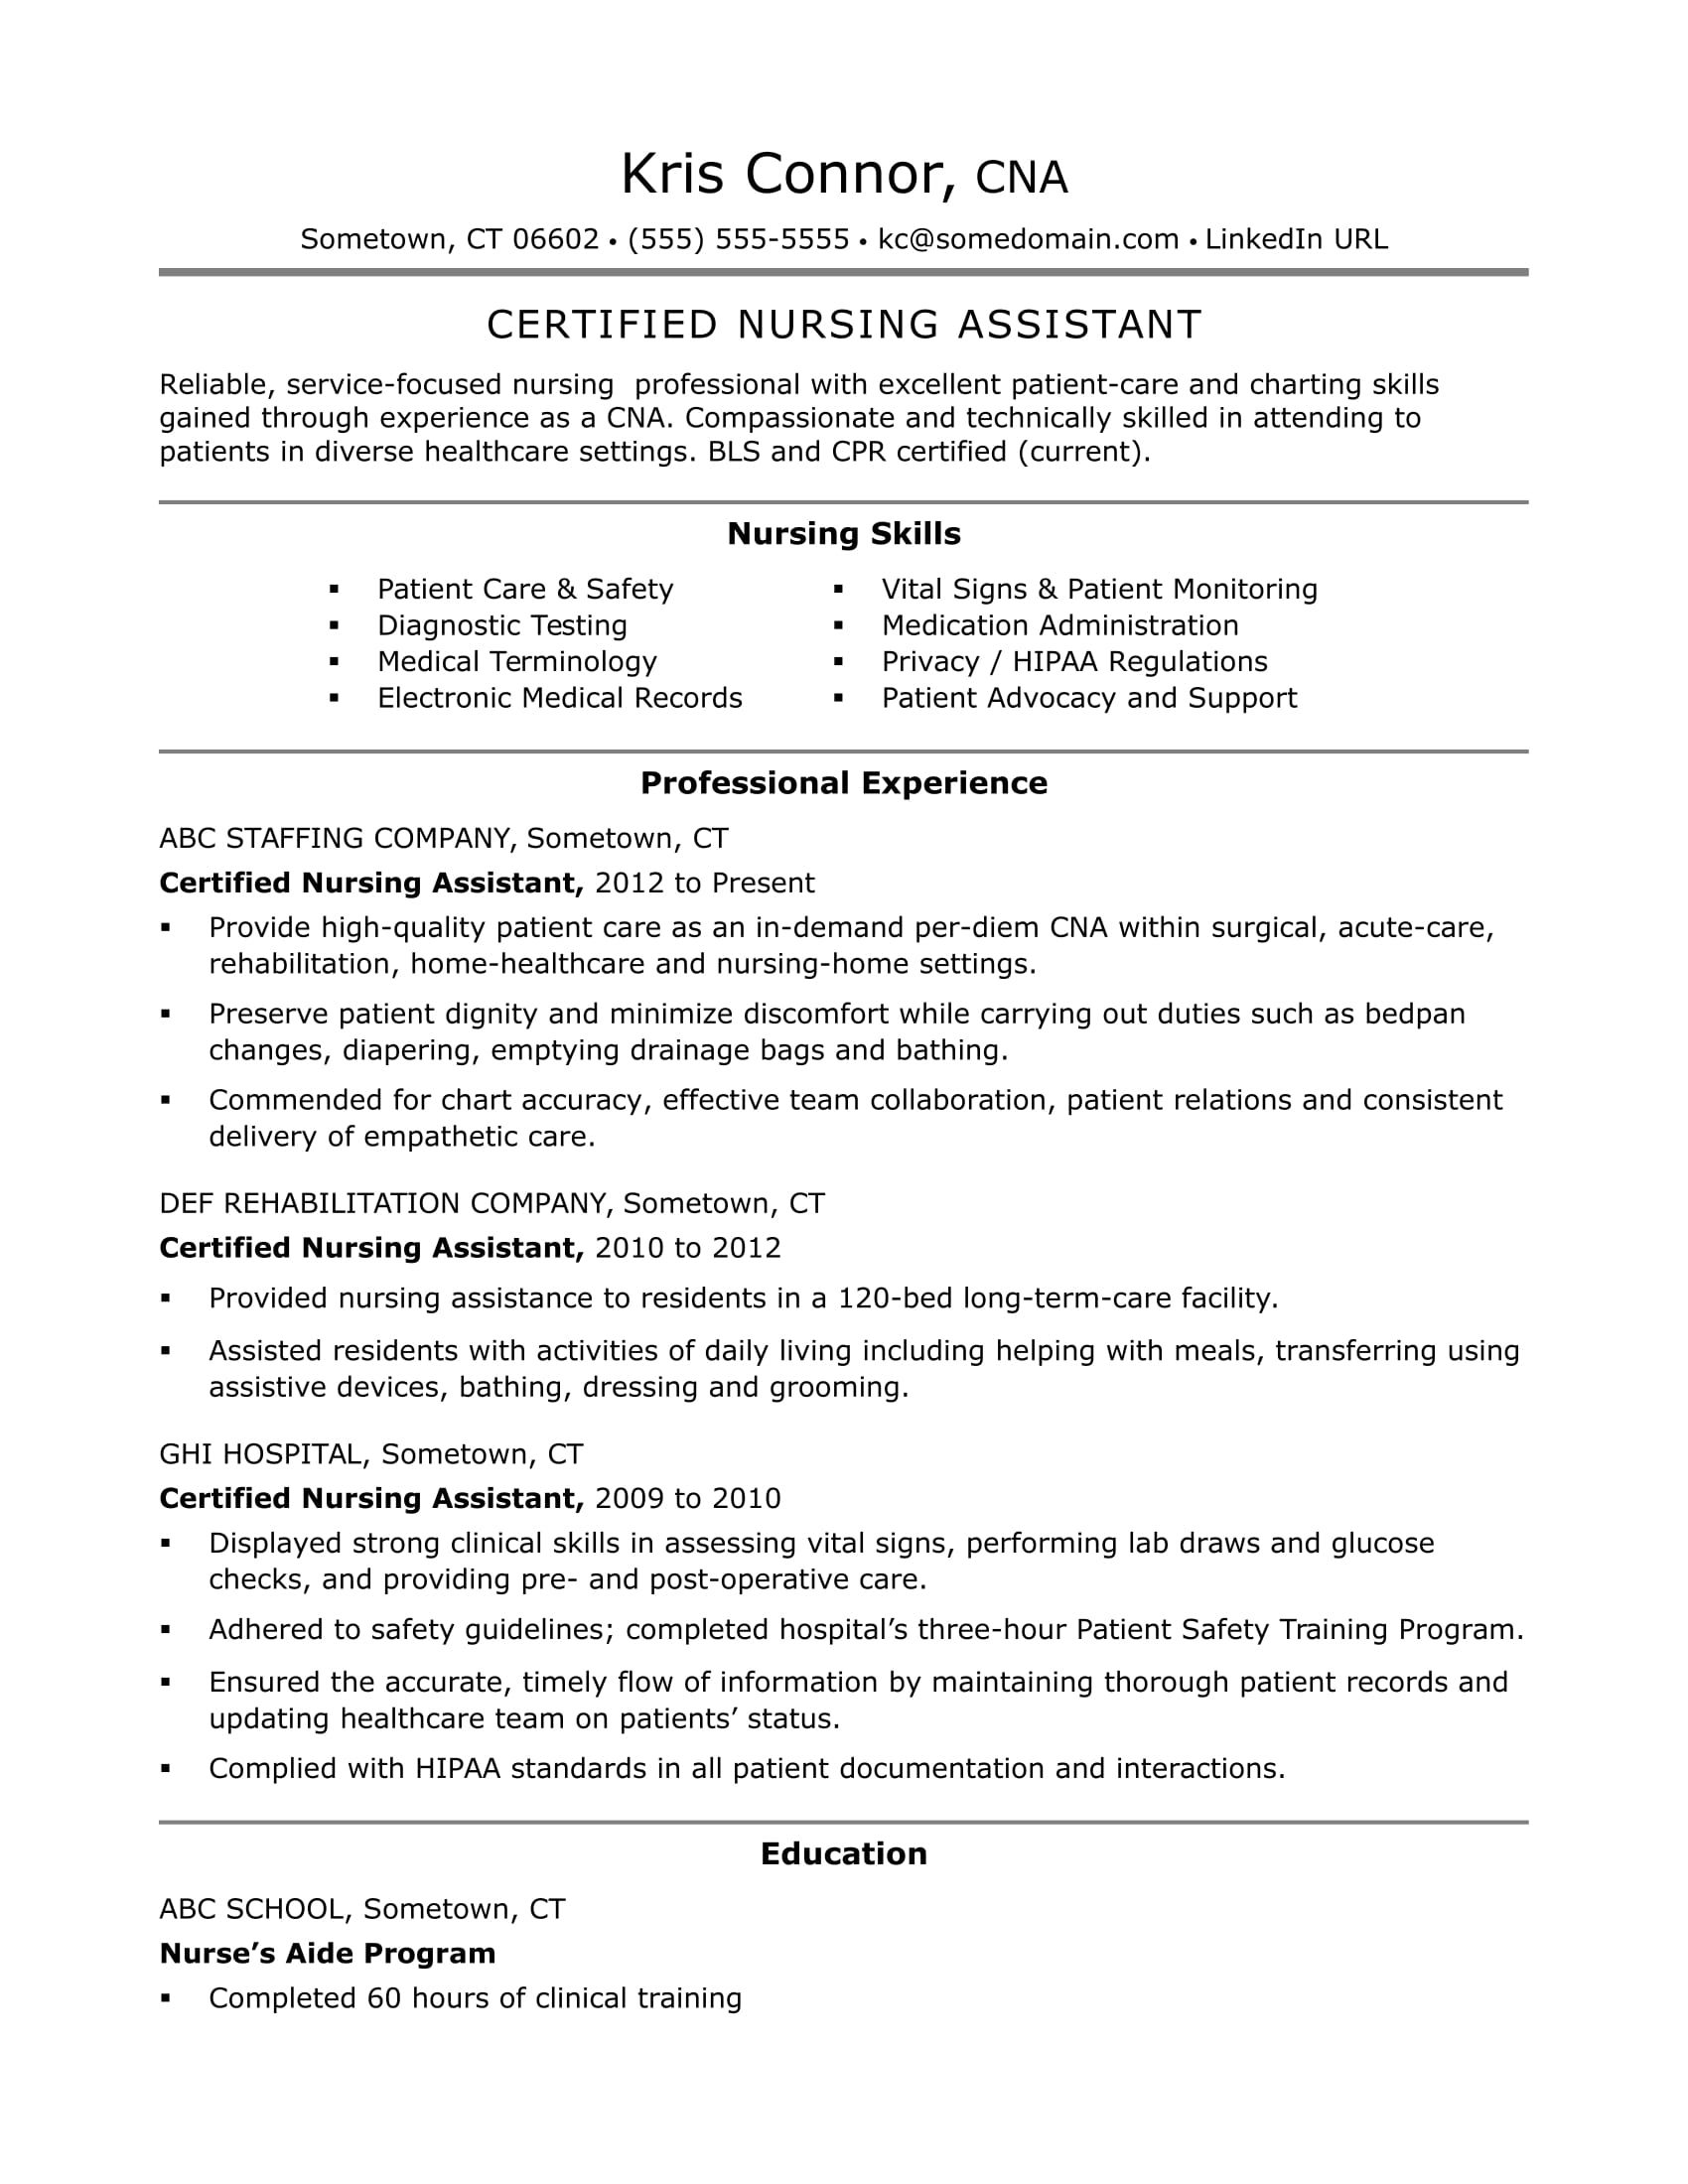 Cna resume examples skills for cnas monster cna resume example thecheapjerseys